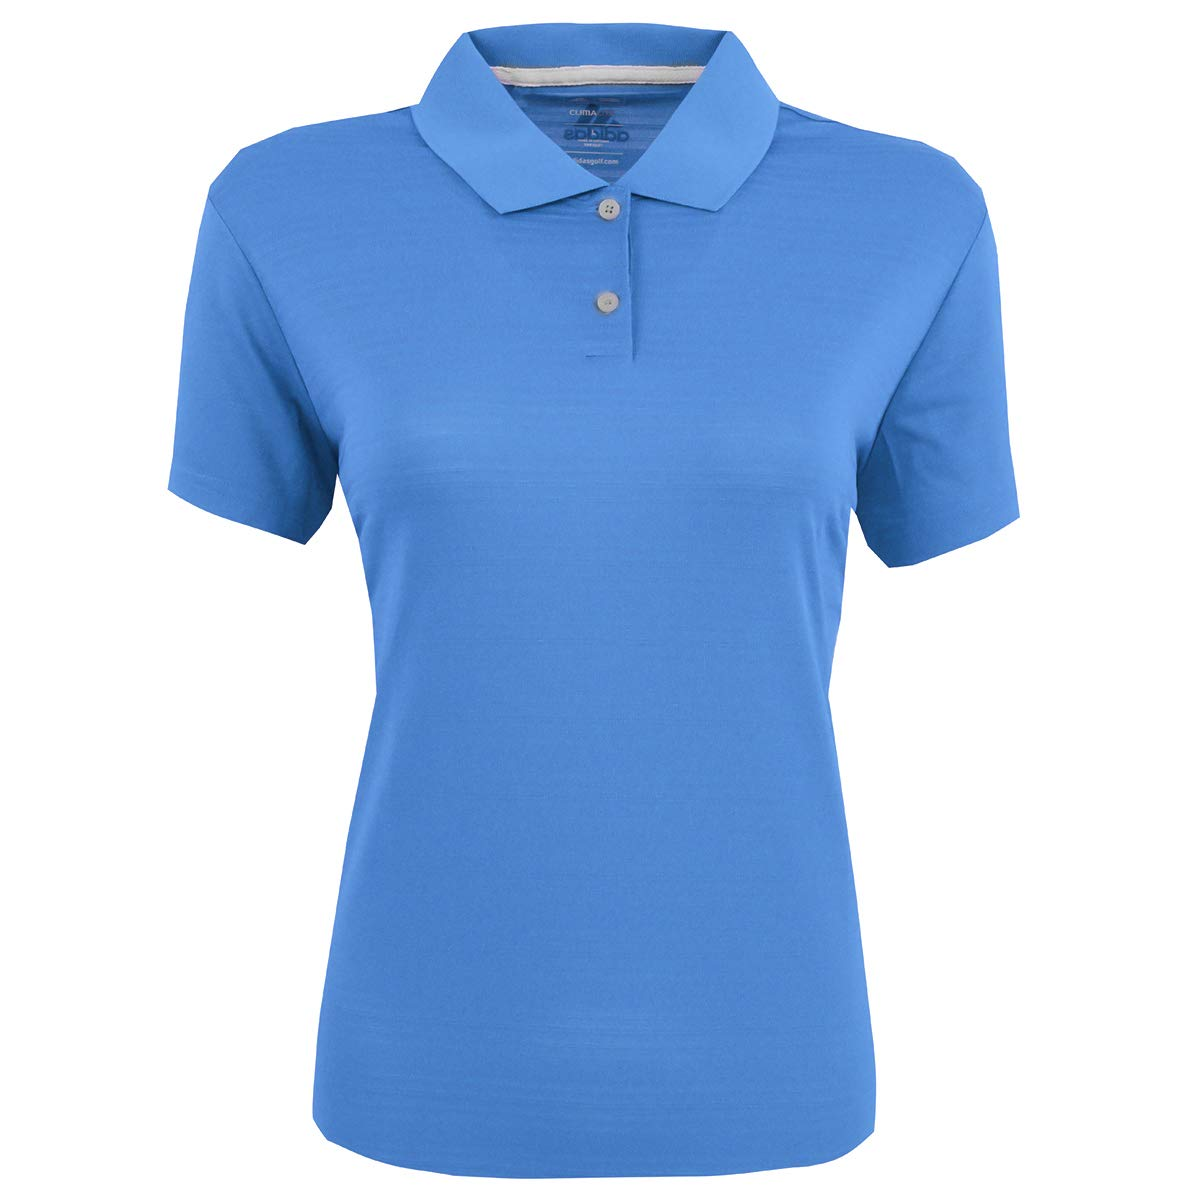 adidas Golf Womens Climalite Textured Short-Sleeve Polo (A162) -Gulf -S